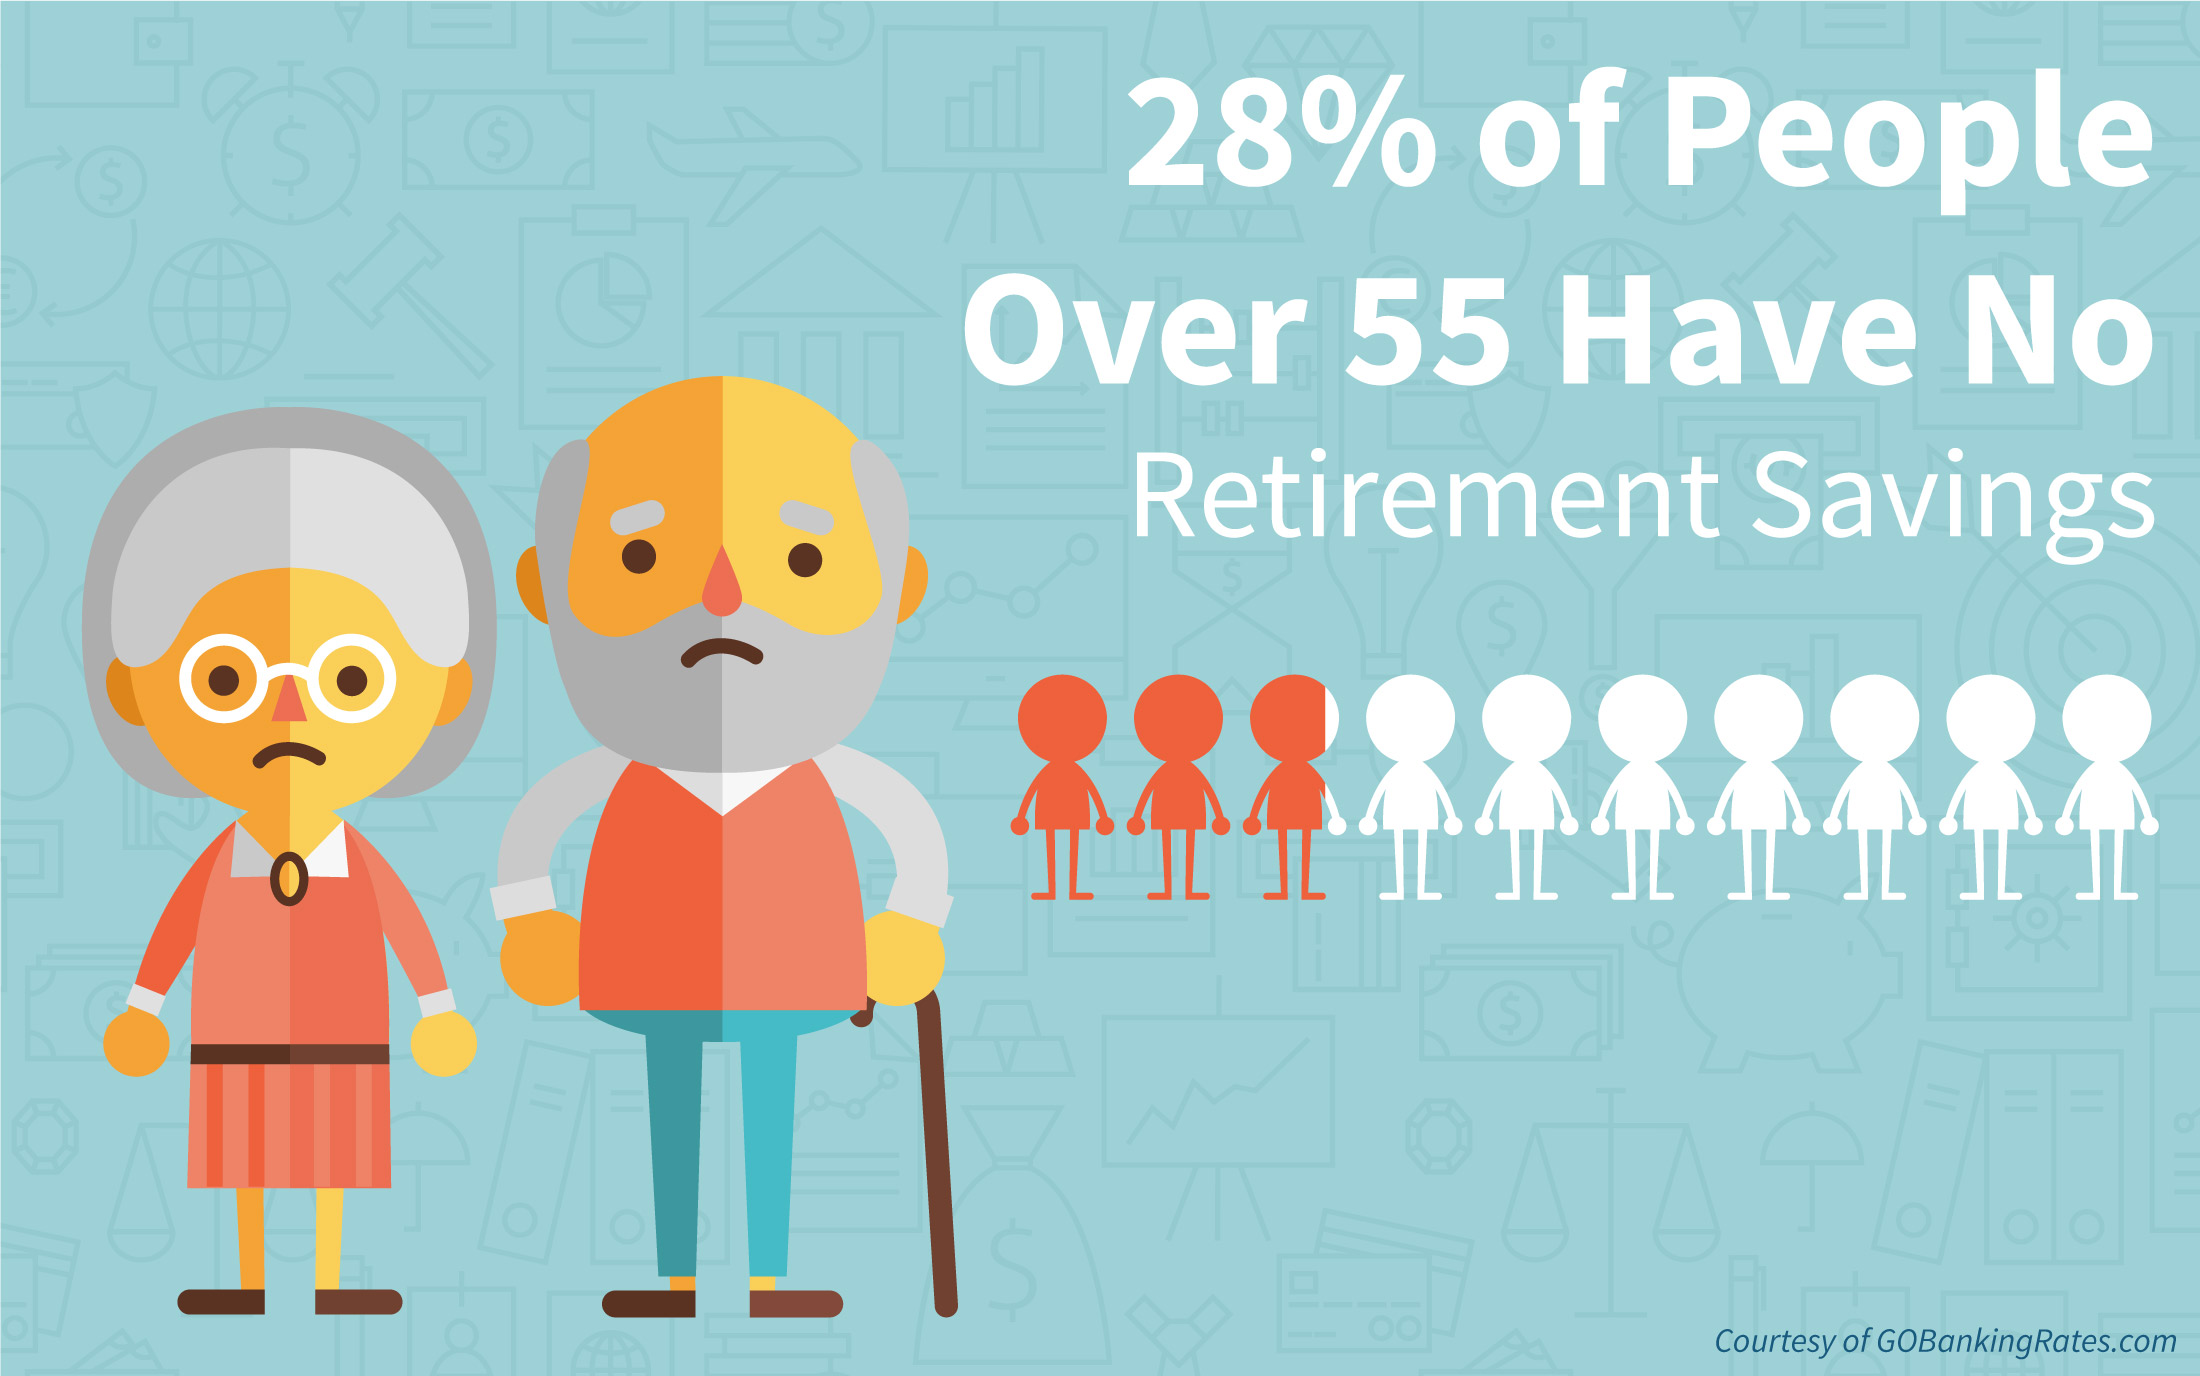 Survey: Nearly 30% of Boomers and Seniors Have No Retirement Savings